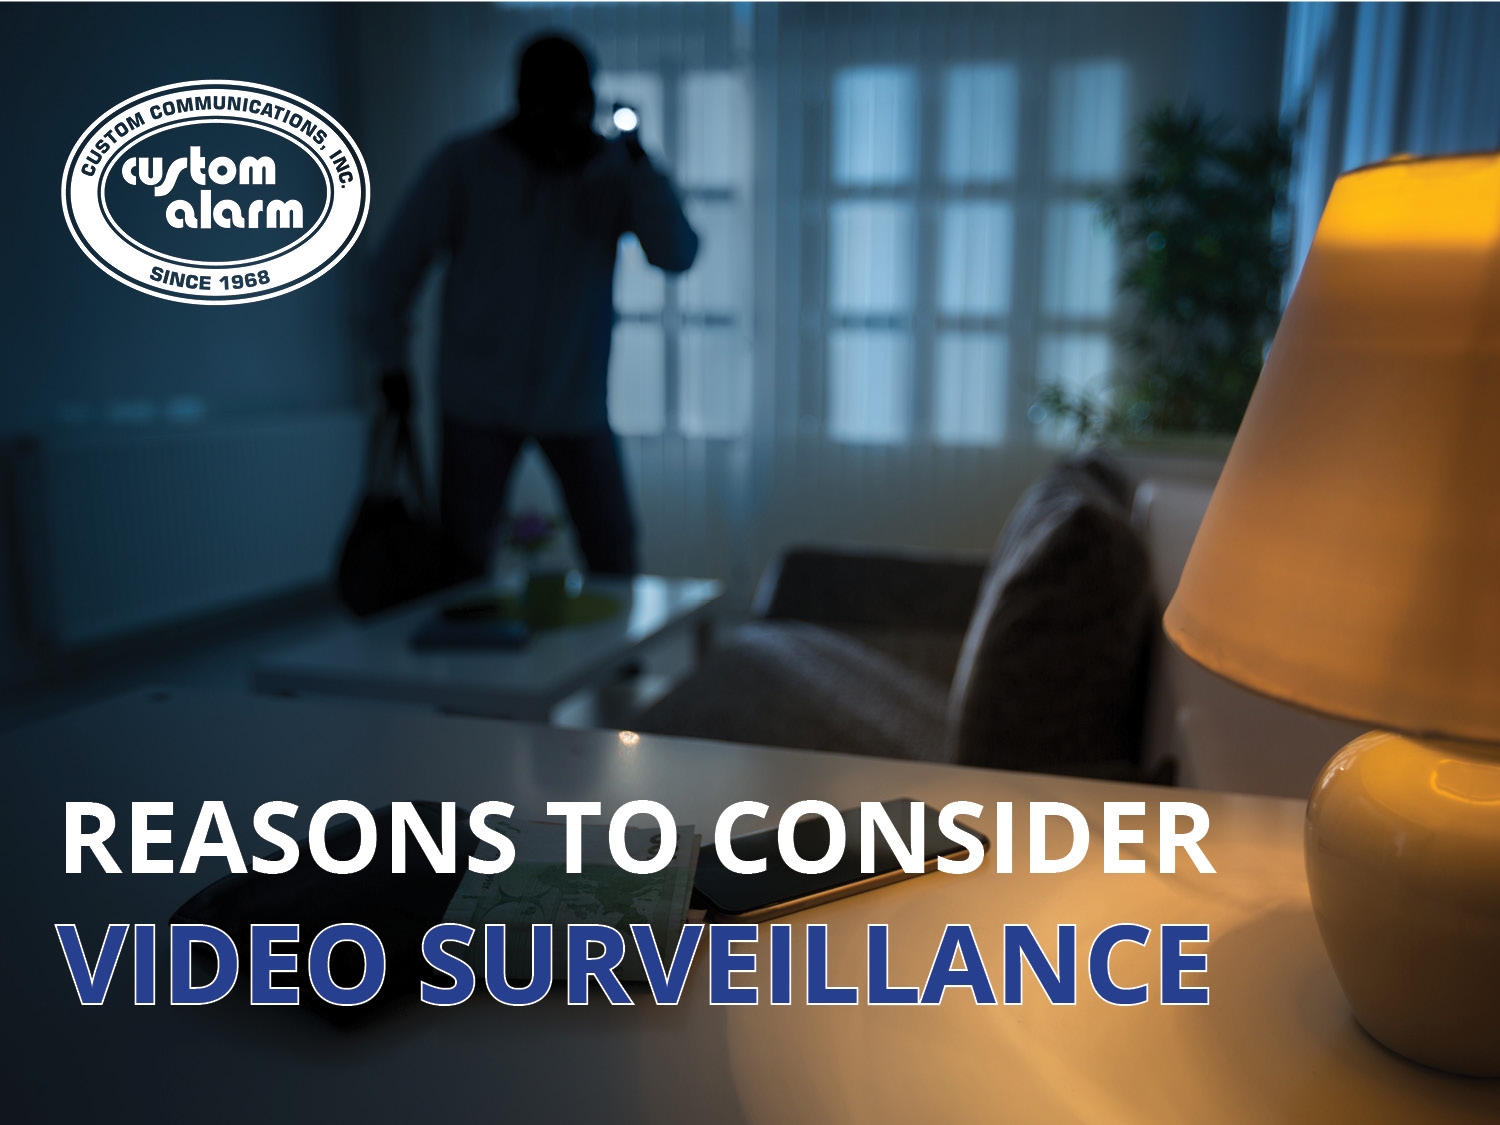 Reasons to consider video surveillance